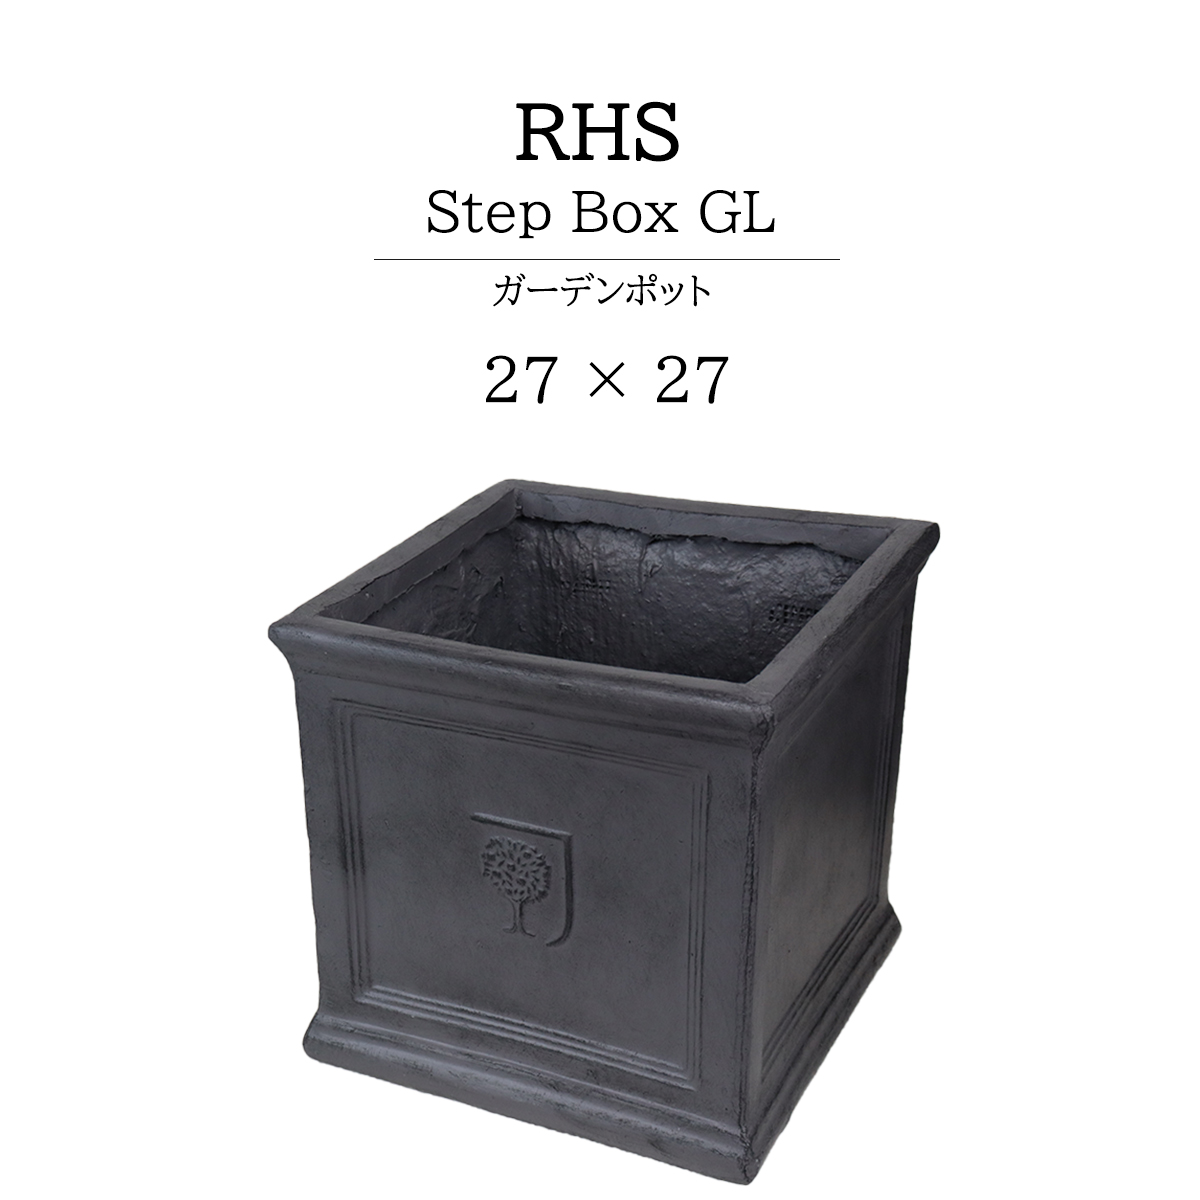 RHS RoundBox Momote